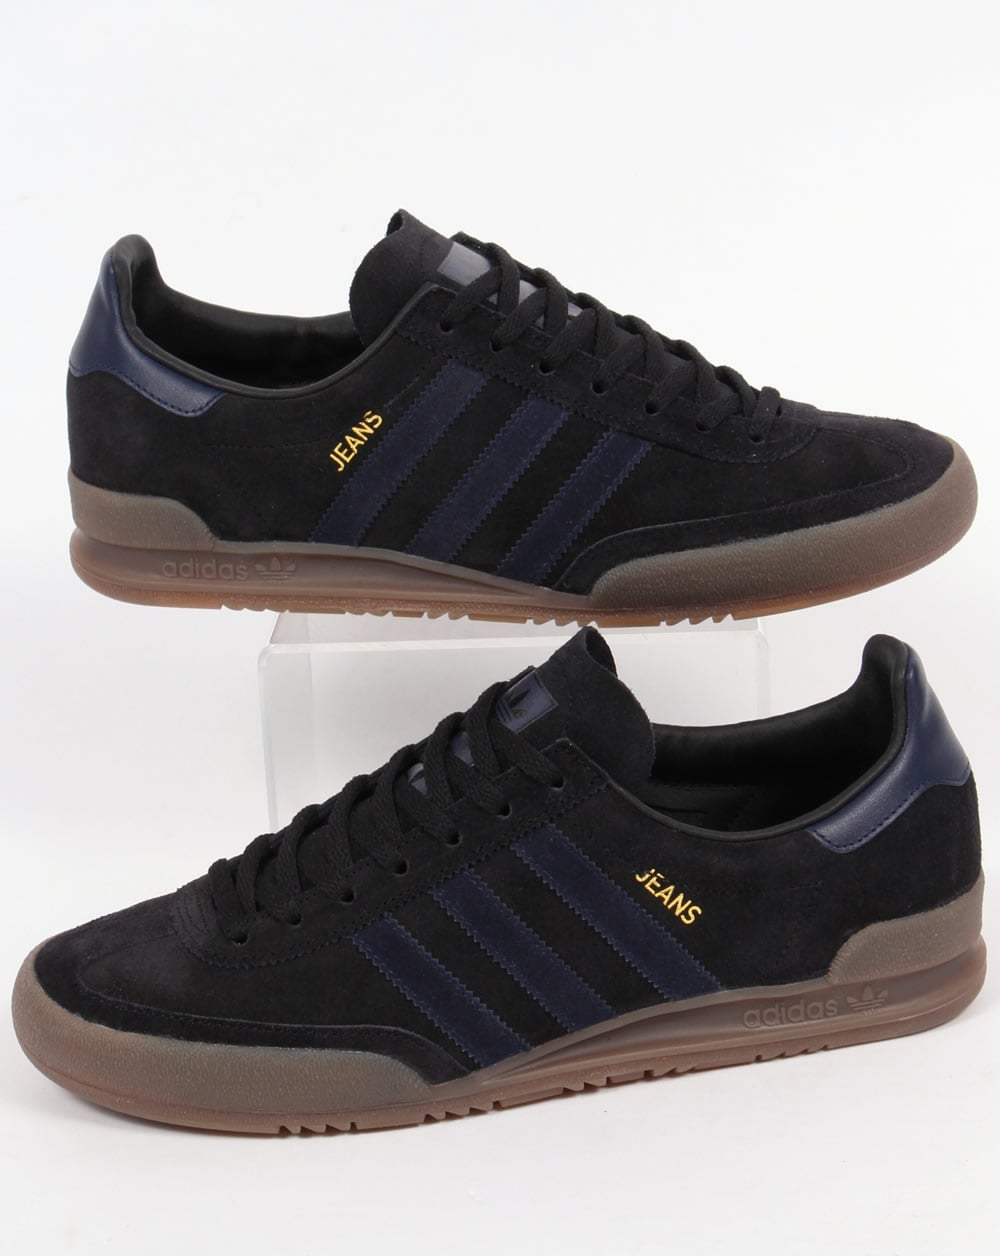 adidas jeans trainers black